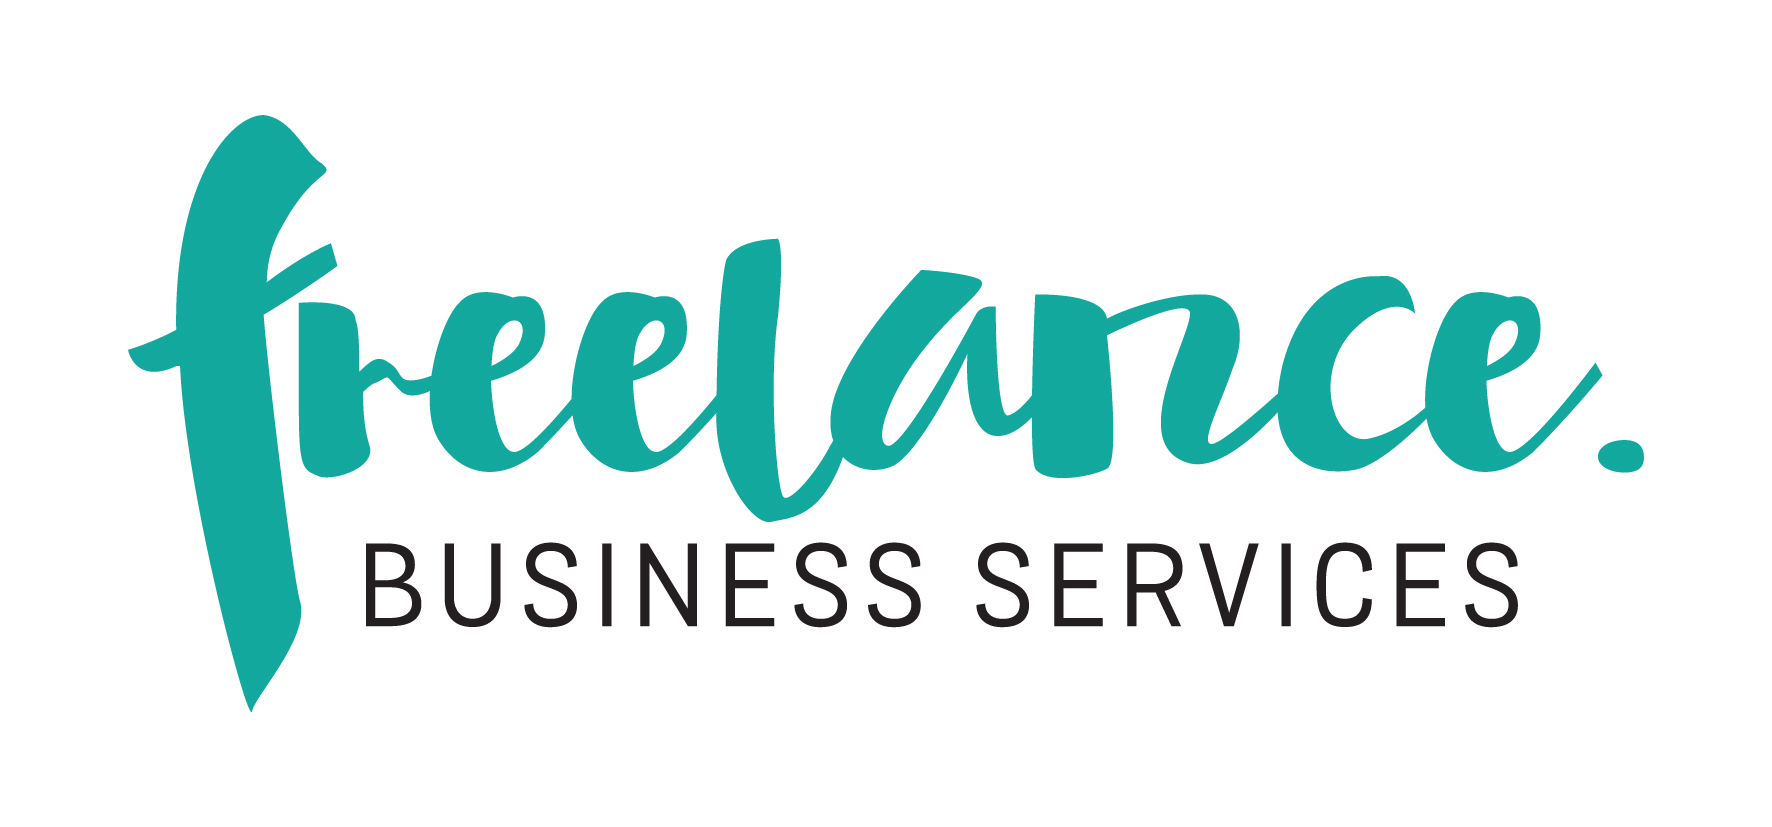 Freelance Business Services Logo